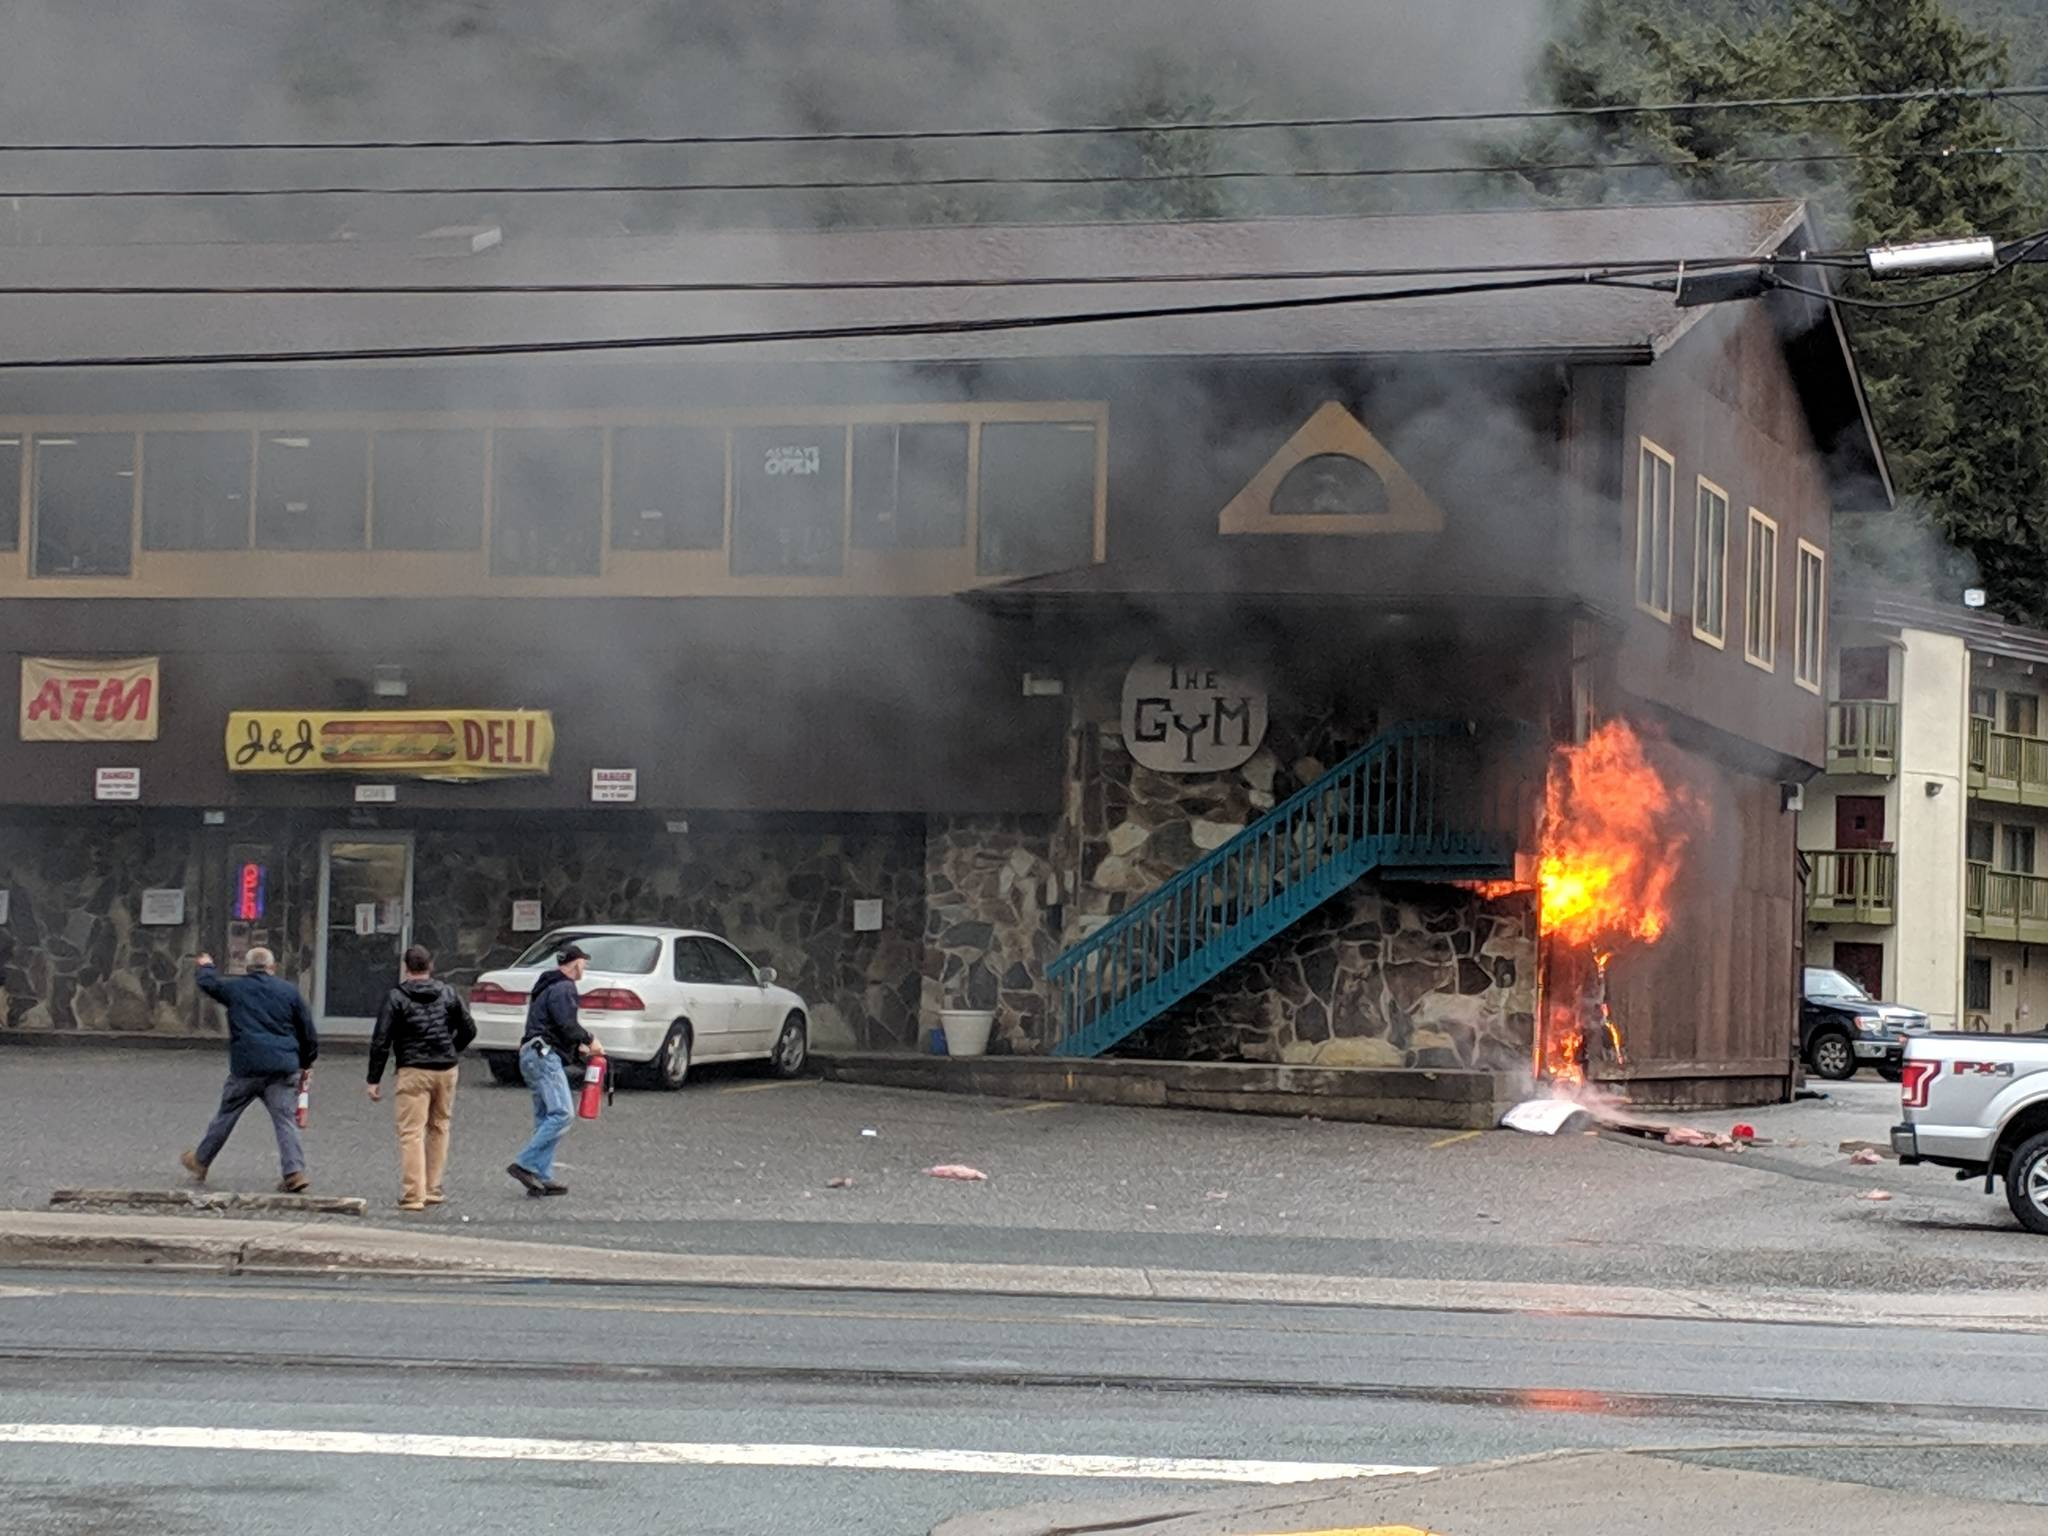 The building that houses The Gym, J&J Deli and more was the site of fire Monday, April 22, 2019. No one was harmed in the fire. Before Capital City Fire/Rescue arrived Alaska Electric Light & Power workers used fire extinguishers to help control the fire. (Ben Hohenstatt | Juneau Empire)